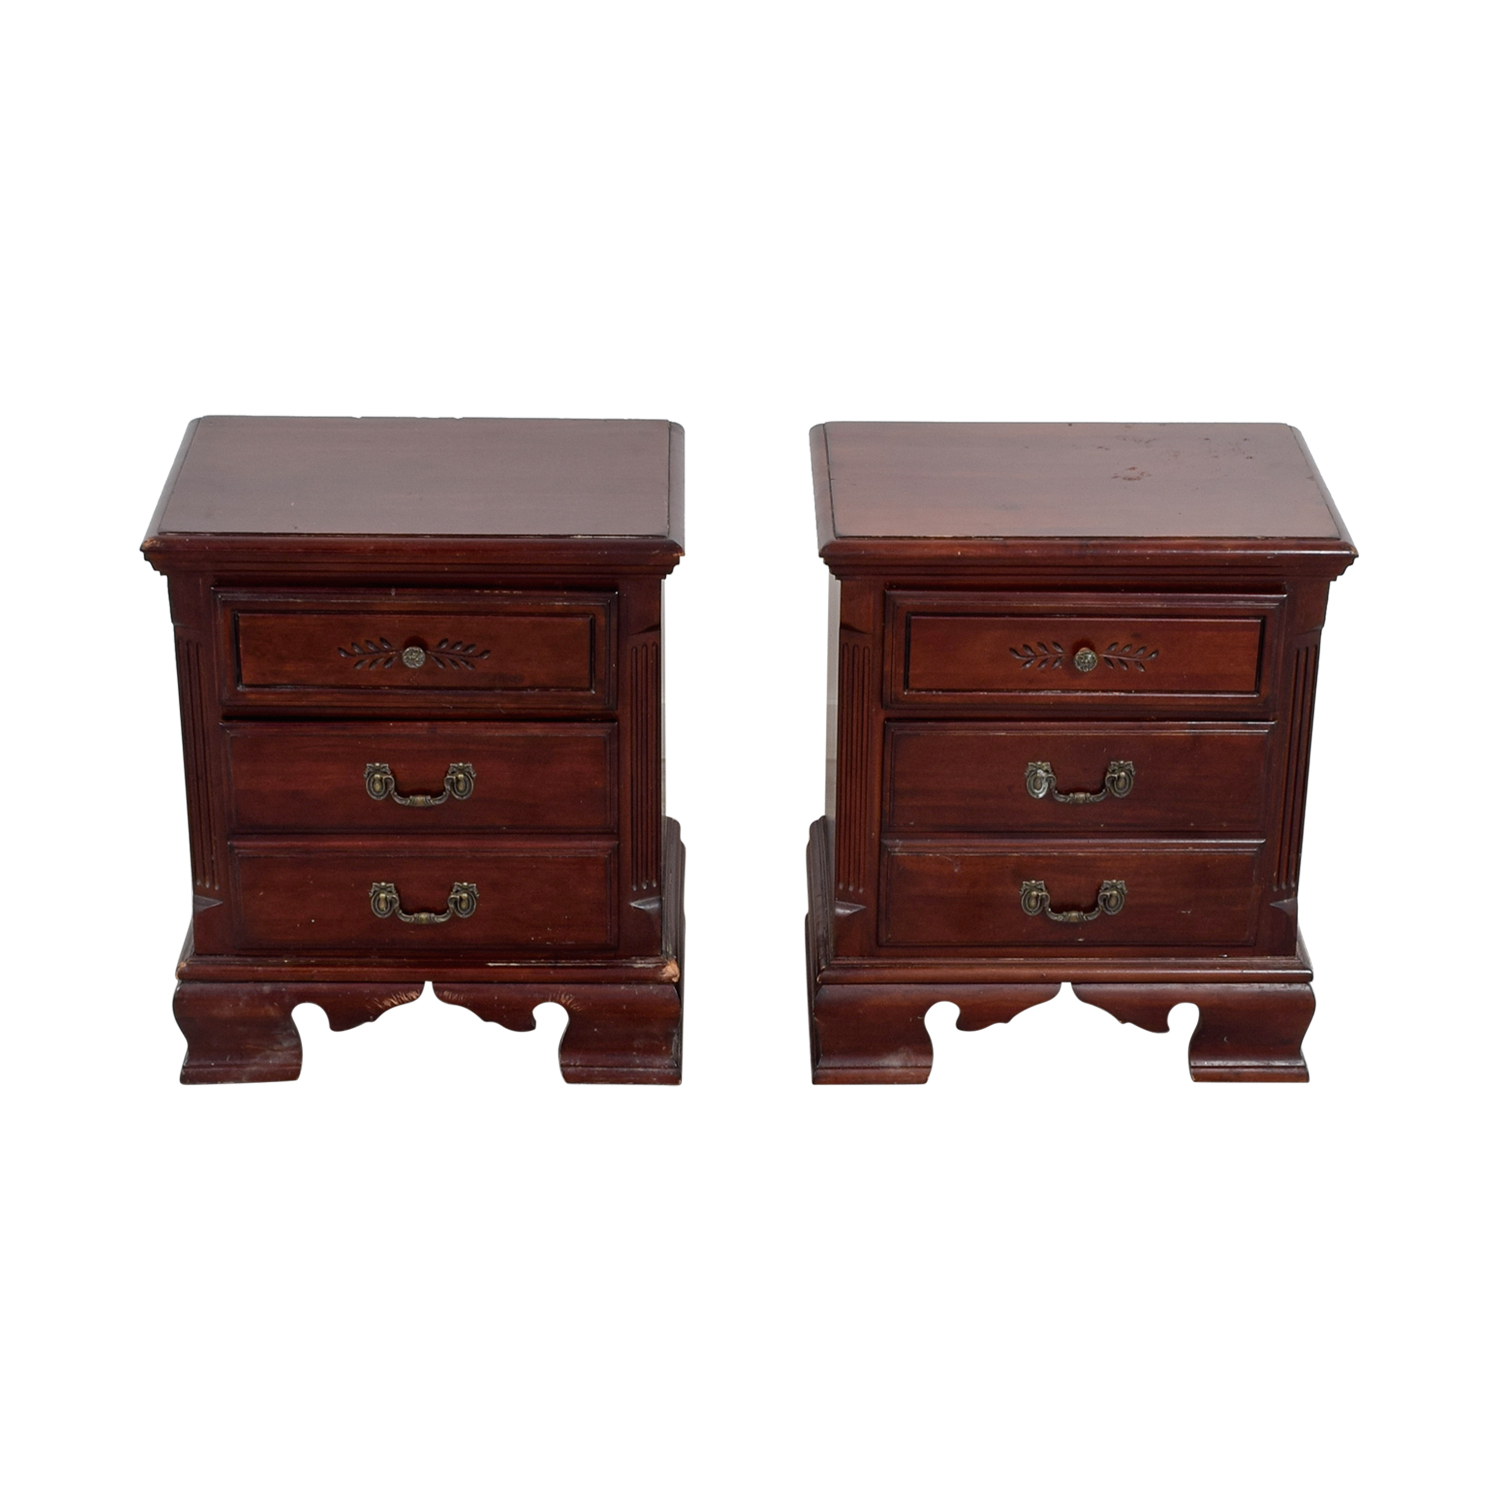 77 Off Hekman Furniture Hekman Furniture Company Two Drawer End